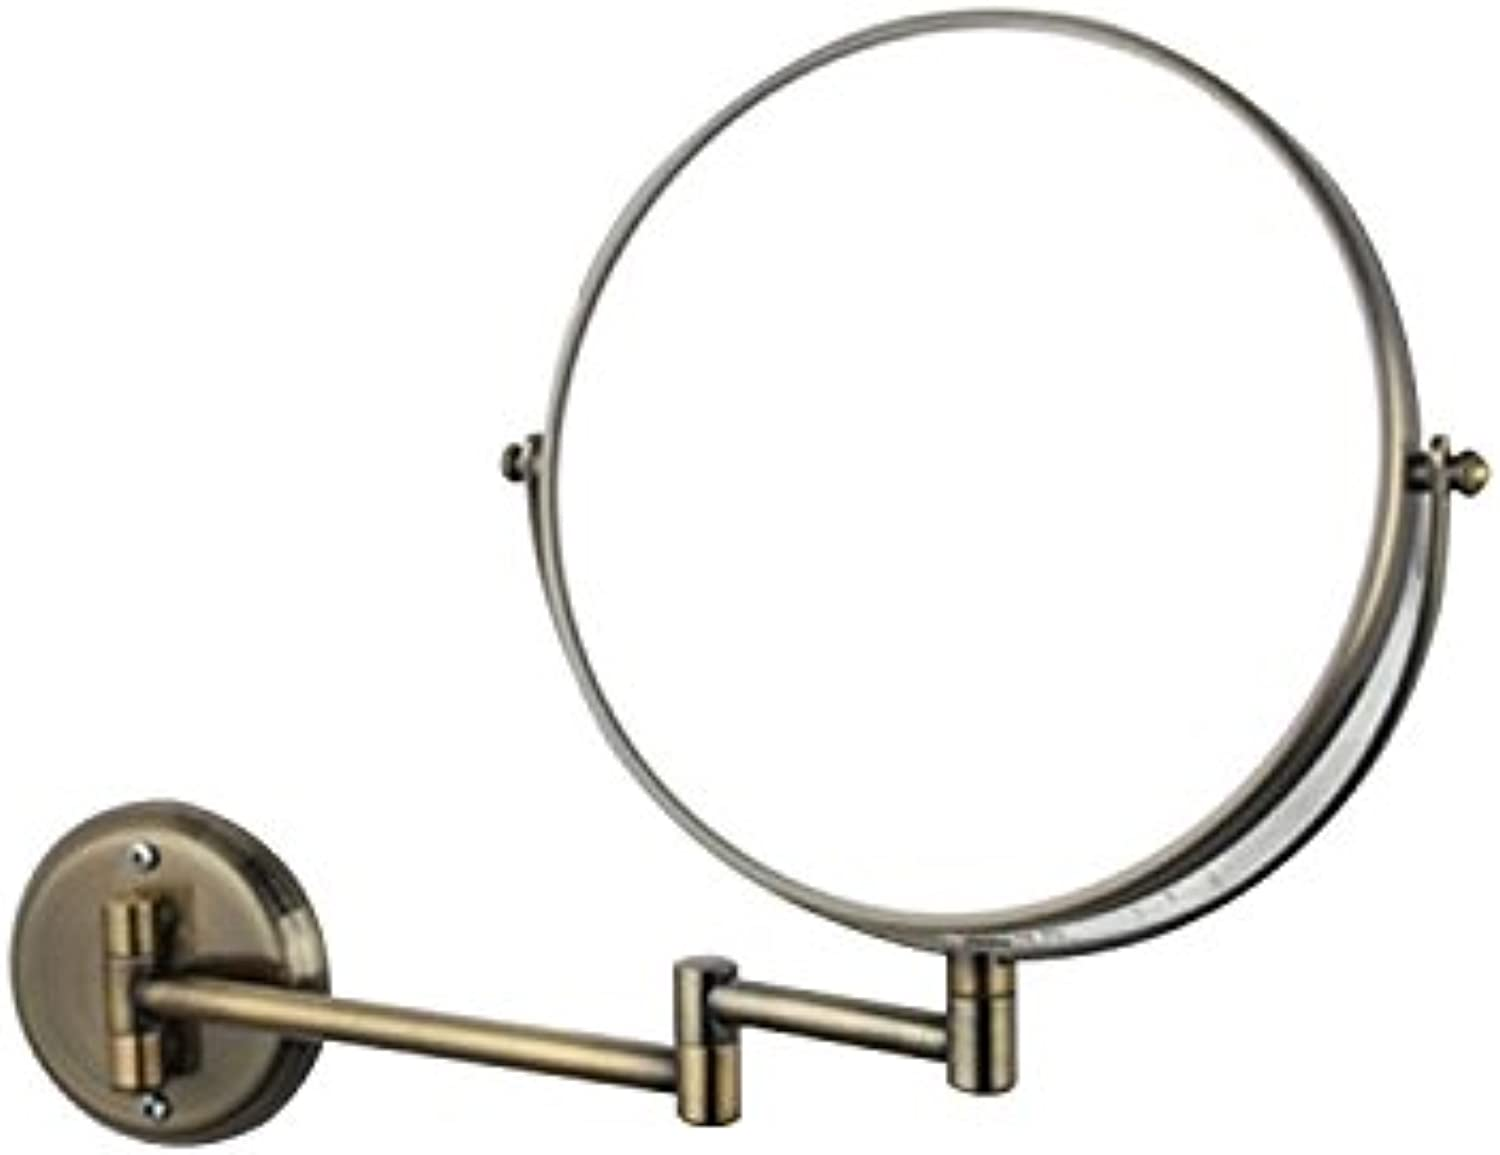 LUANT Wall Mount Makeup Mirror 3X Magnification Bathroom Swivel Two-Sided 8-Inch, Brushed Nickel